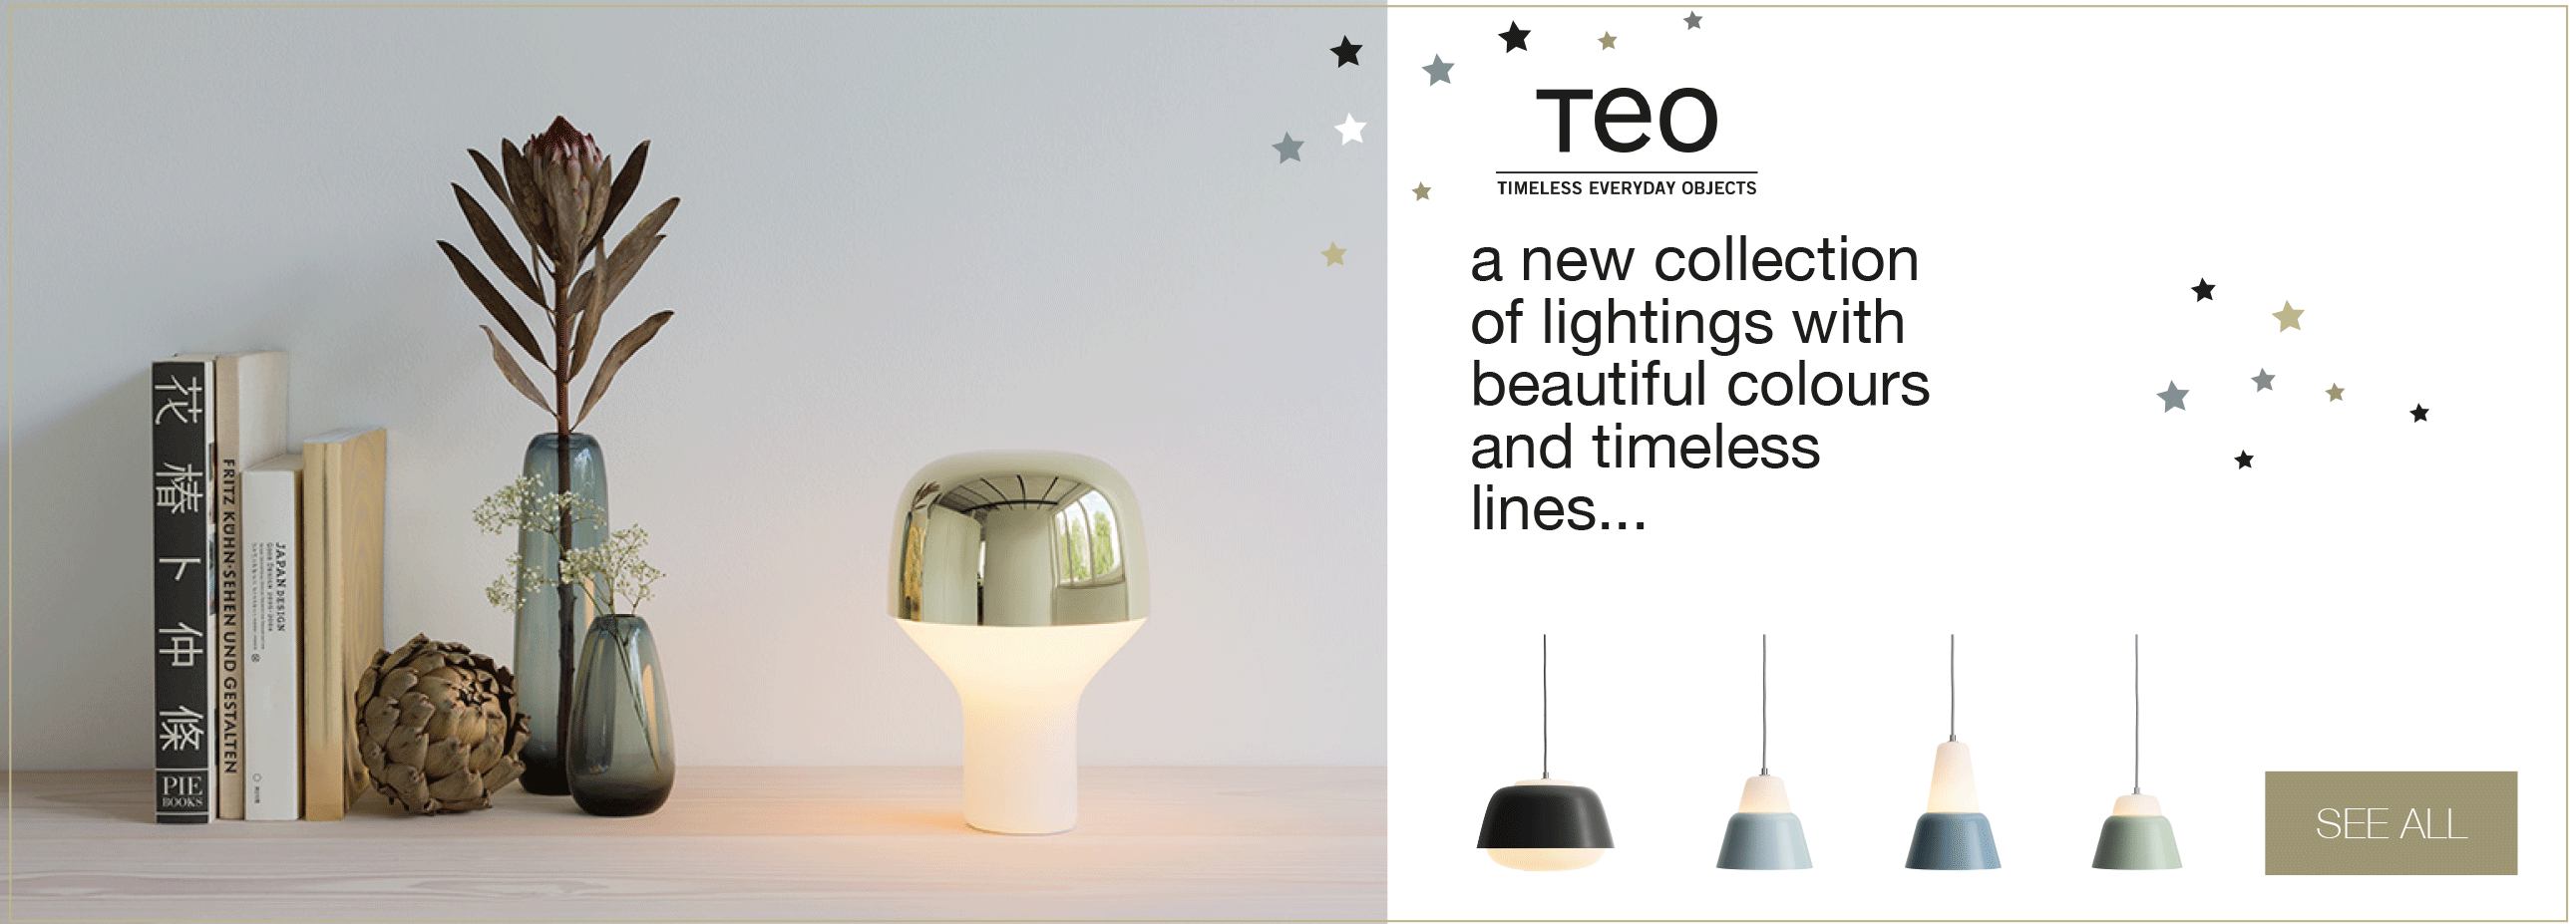 Collection of lighting TEO - Timeless Everyday Objects